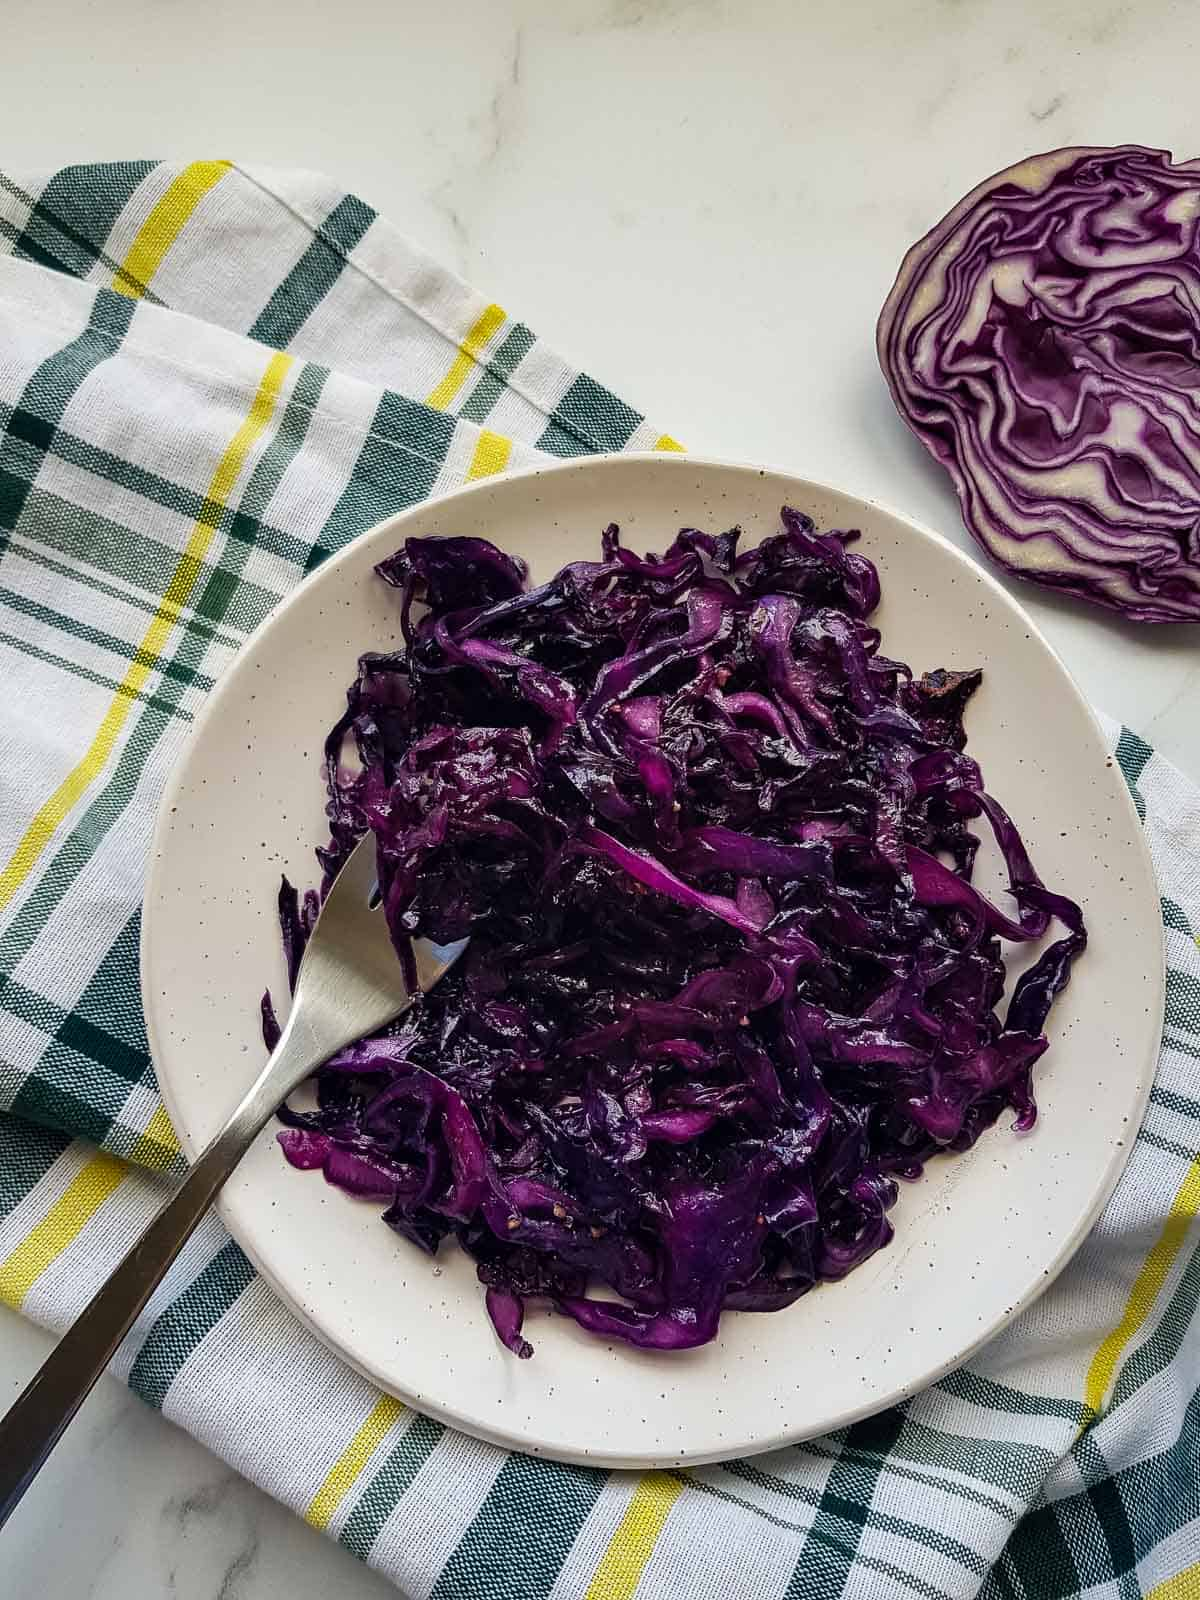 Braised red cabbage on a plate with a fork.